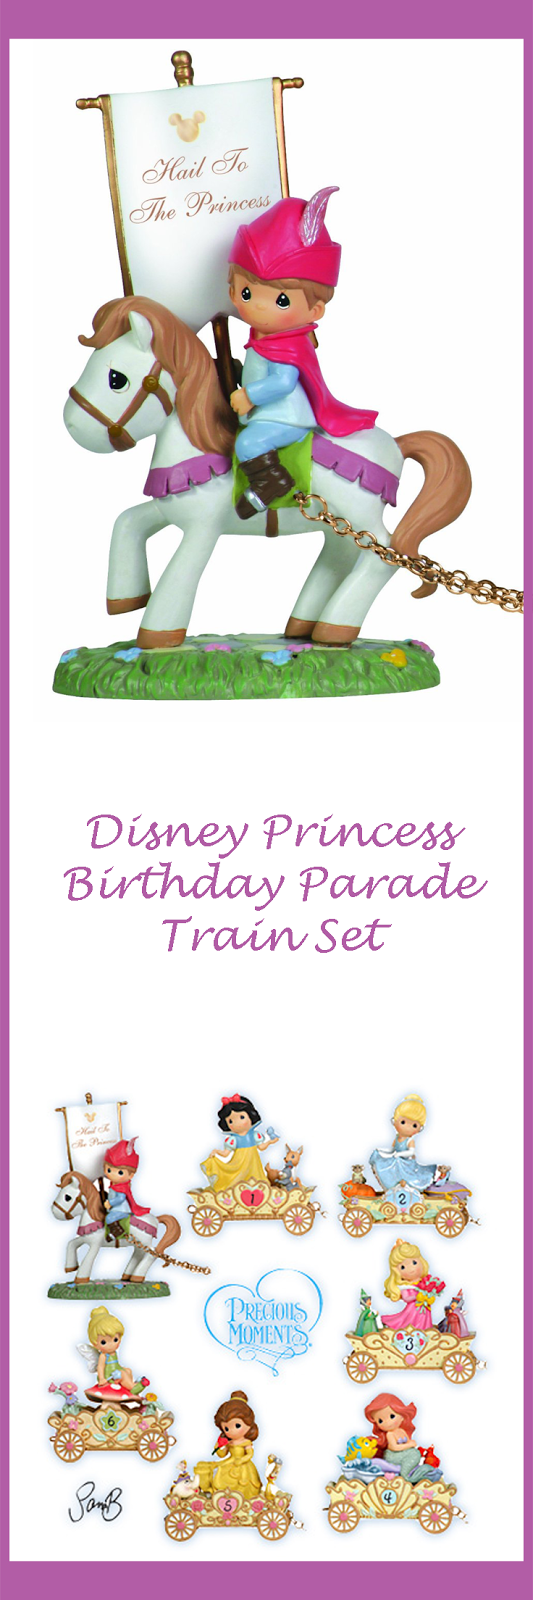 Precious Moments Disney Princess Birthday Parade Train Set